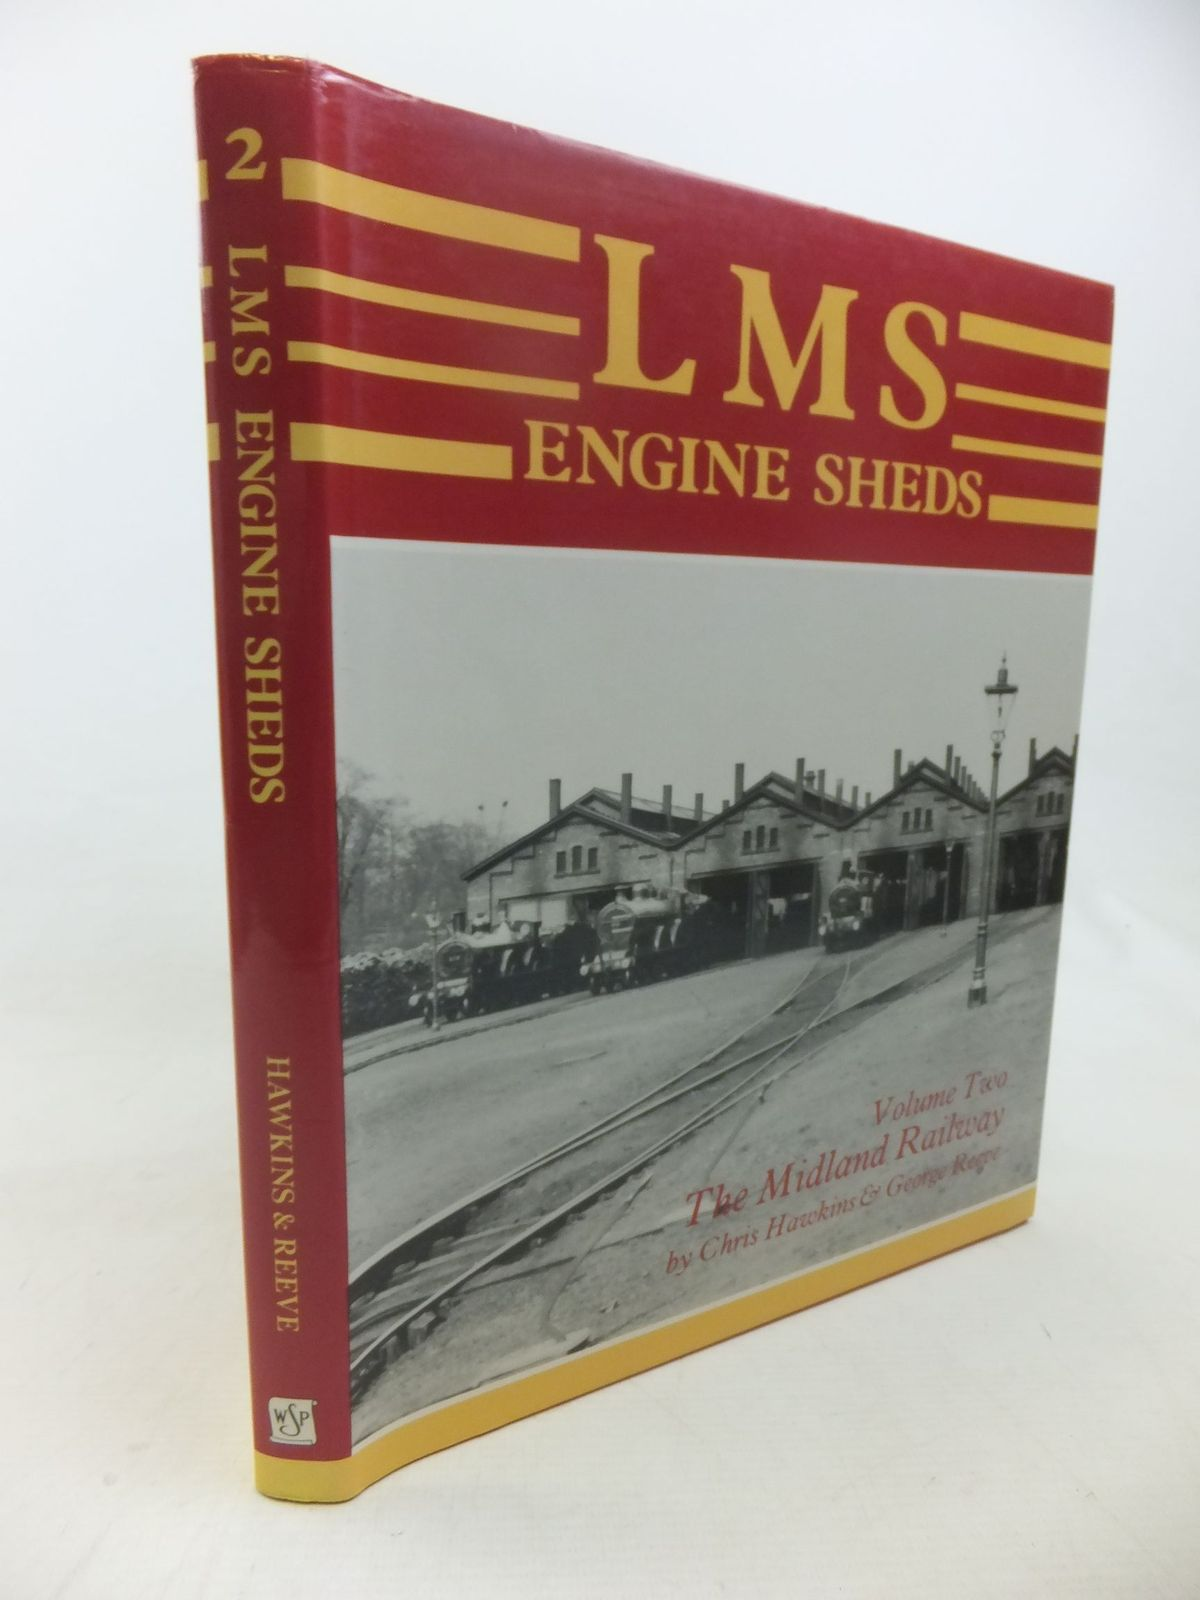 Photo of LMS ENGINE SHEDS THEIR HISTORY AND DEVELOPMENT VOLUME TWO THE MIDLAND RAILWAY- Stock Number: 1713624